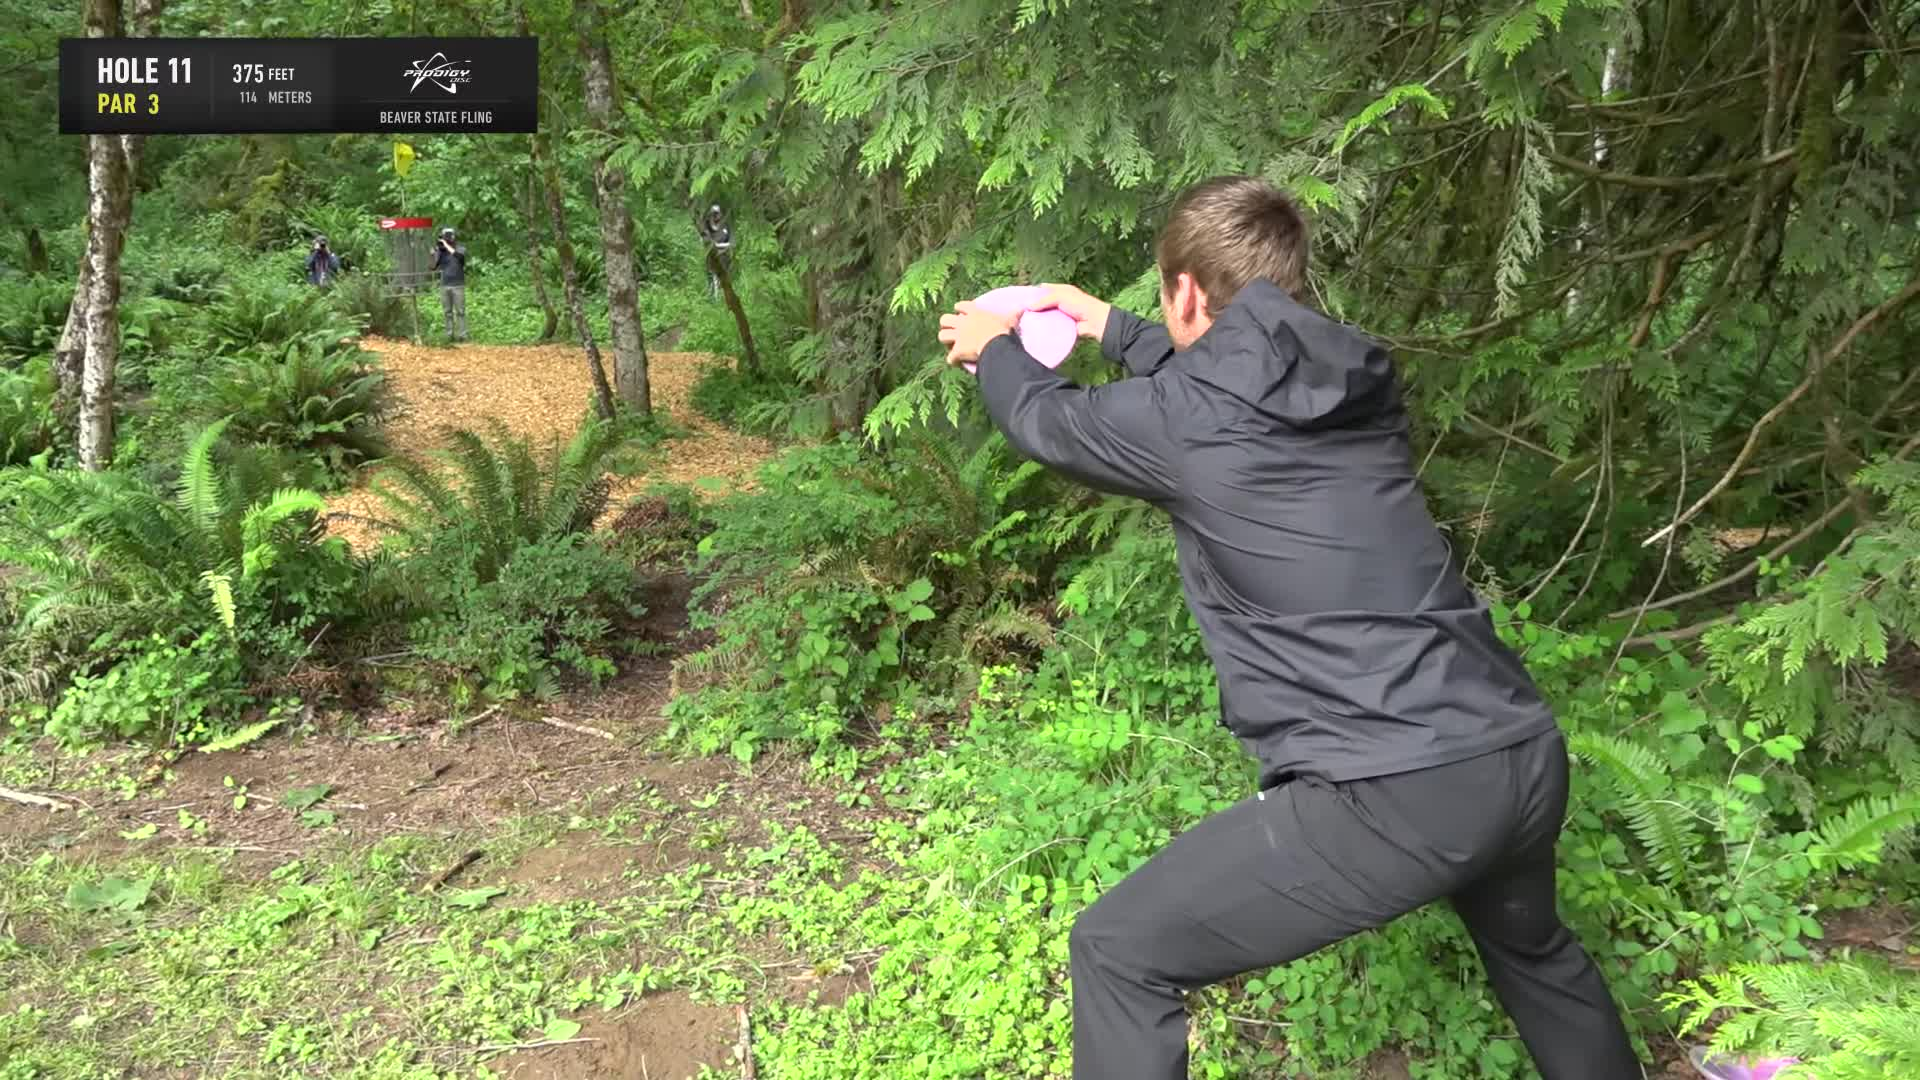 ace, bsf, dela, delaveaga, dgpt, dgwt, disc, disc golf, frolf, hole in one, masters cup, mcbeast, milo, nate sexton, nt, paul mcbeth, pdga, simon lizotte, tournament, worlds, 2019 Beaver State Fling - Round 1 Part 2 - Kevin Jones hole 11 putt GIFs